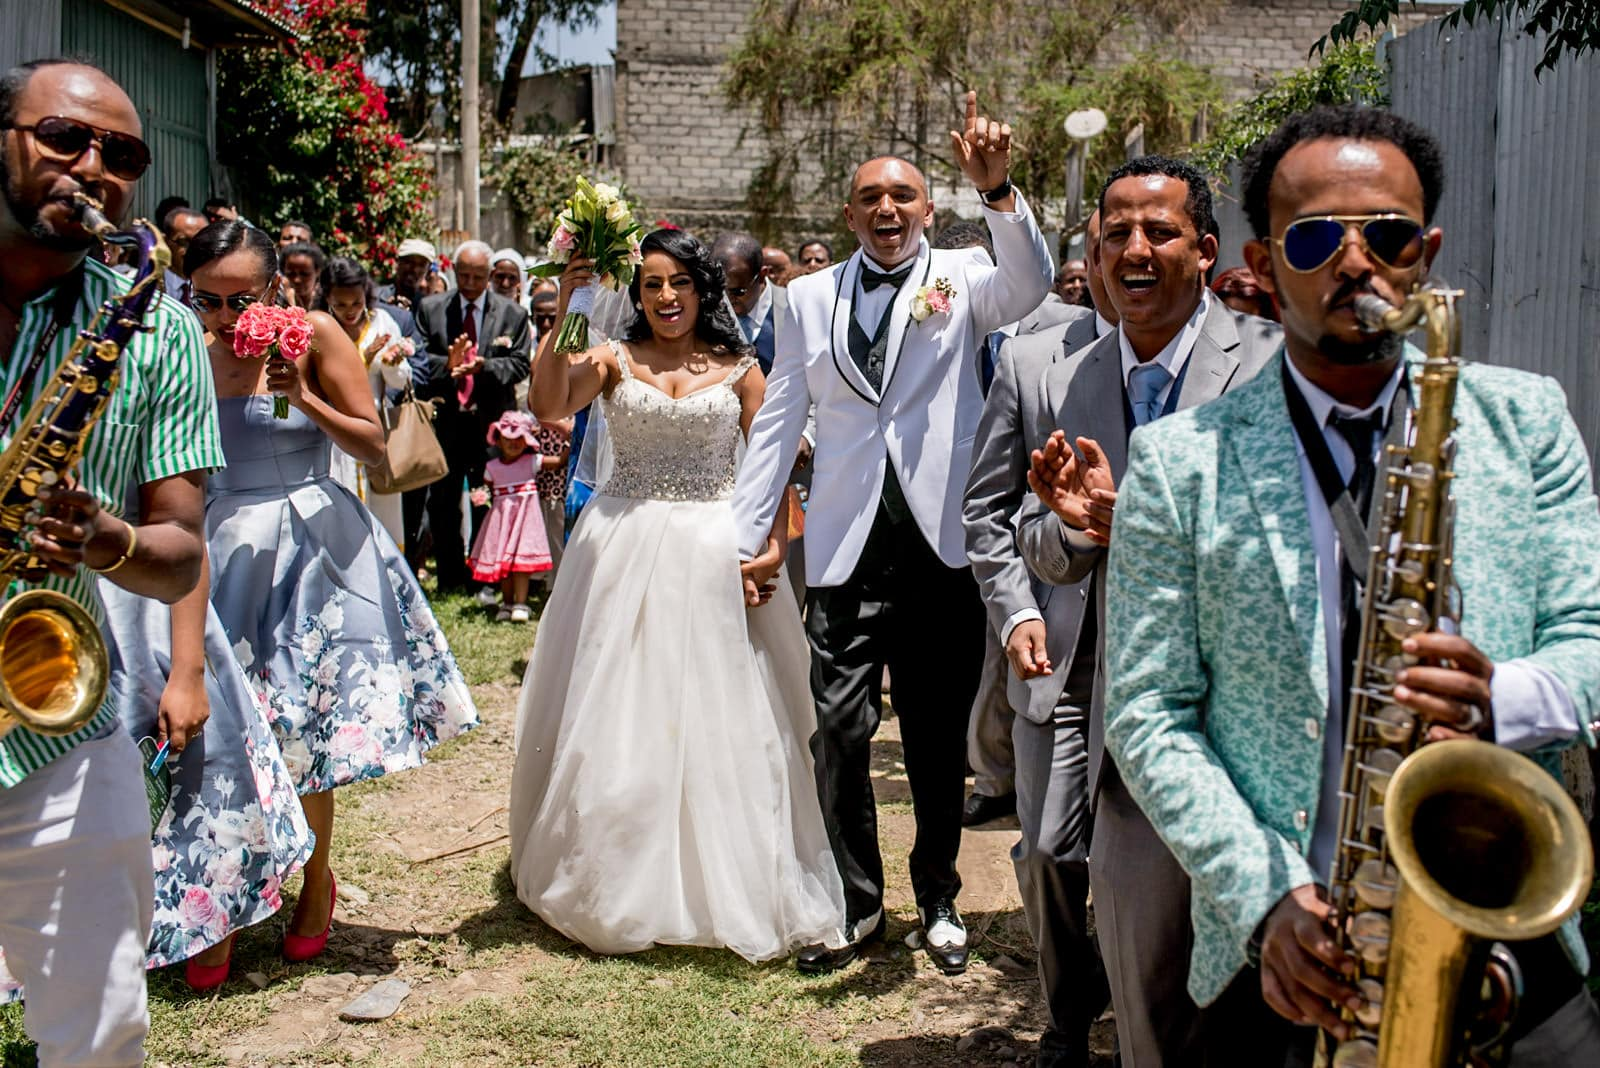 If You Re Planning A Wedding In Ethiopia Or Any Other Destination Location And Like What Ve Seen Then I D Love To Hear From